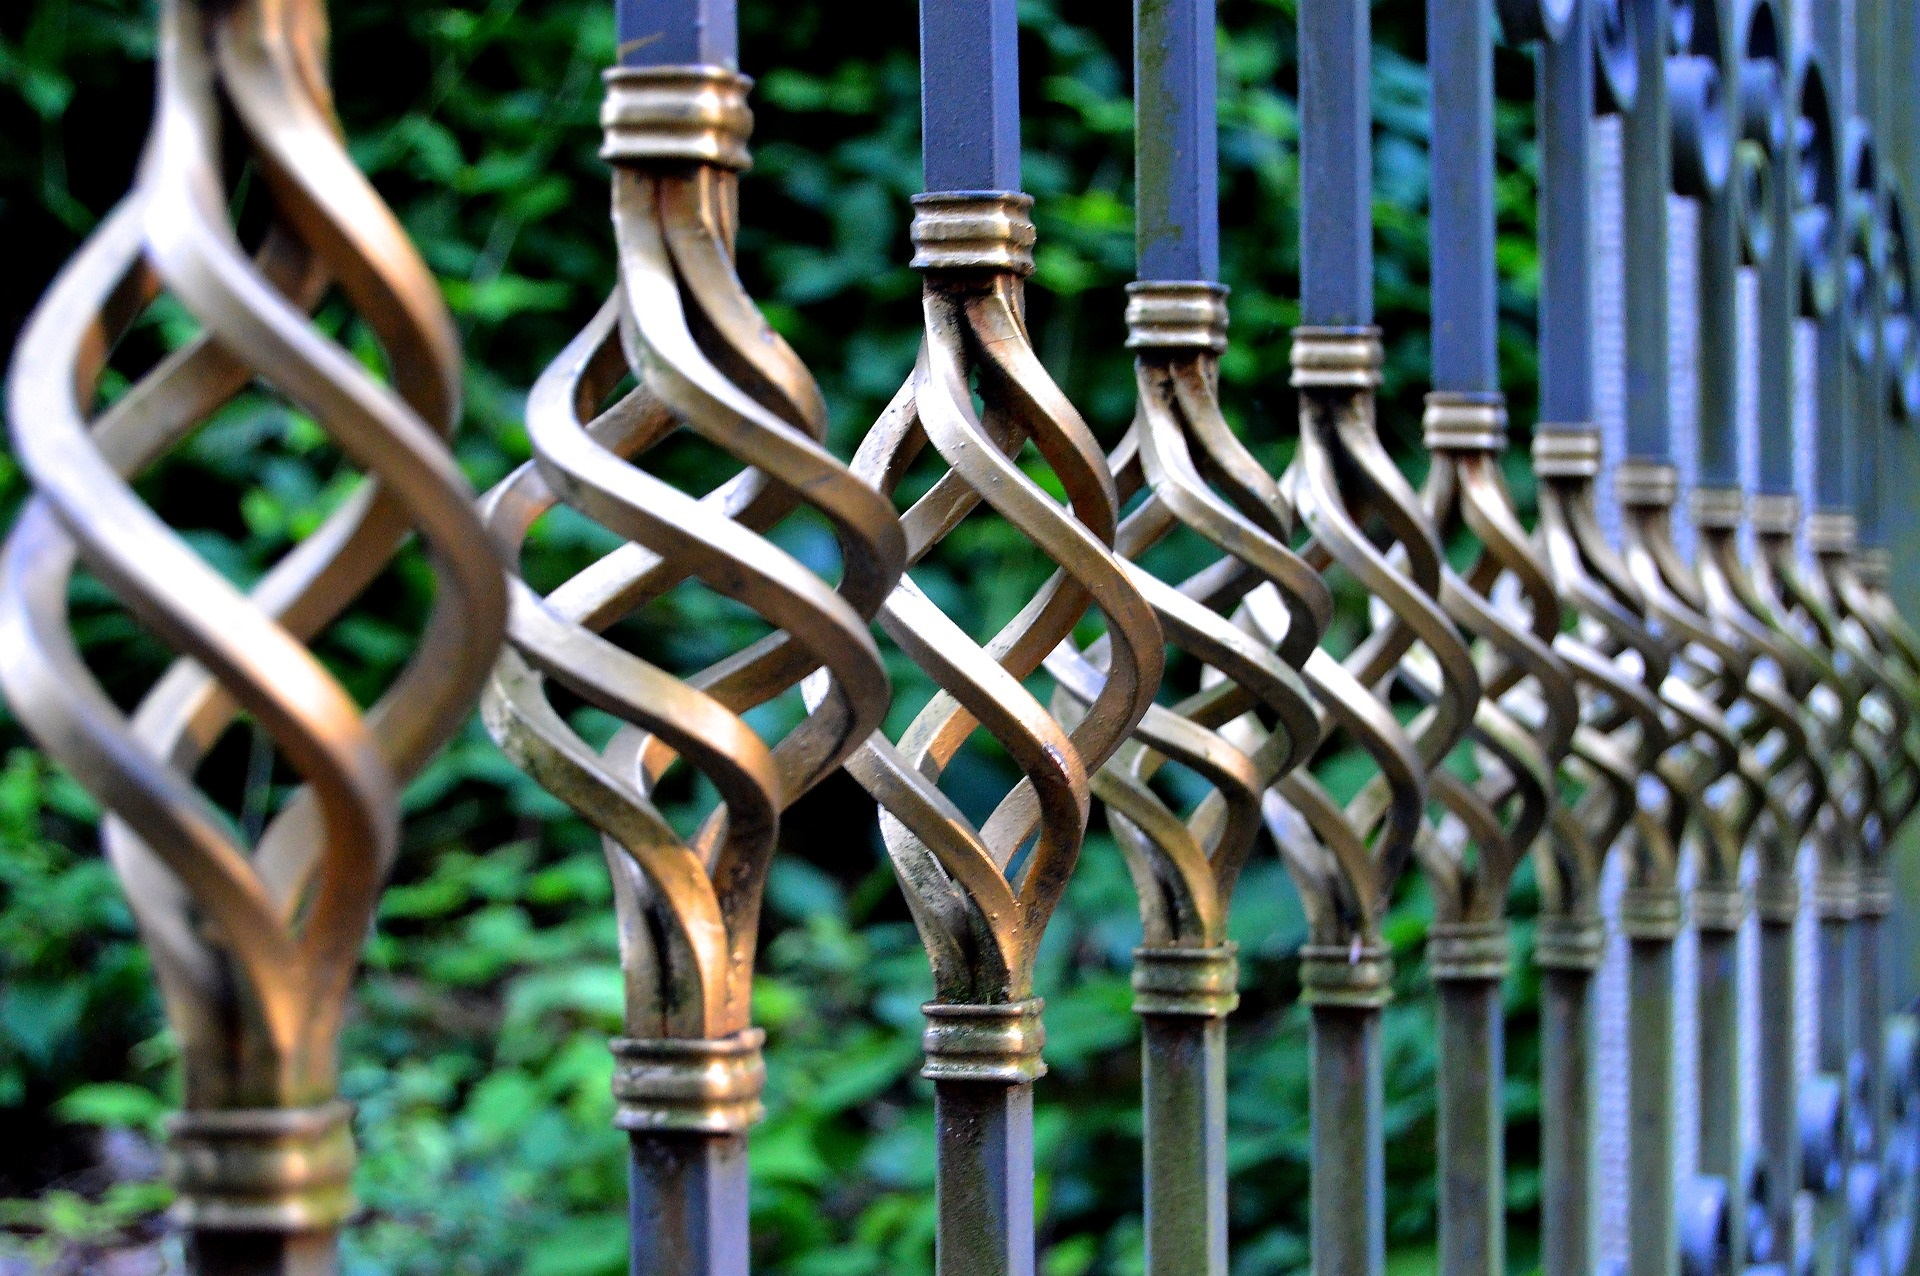 A man impaled his thigh on railings (file photo) Picture: PIXABAY